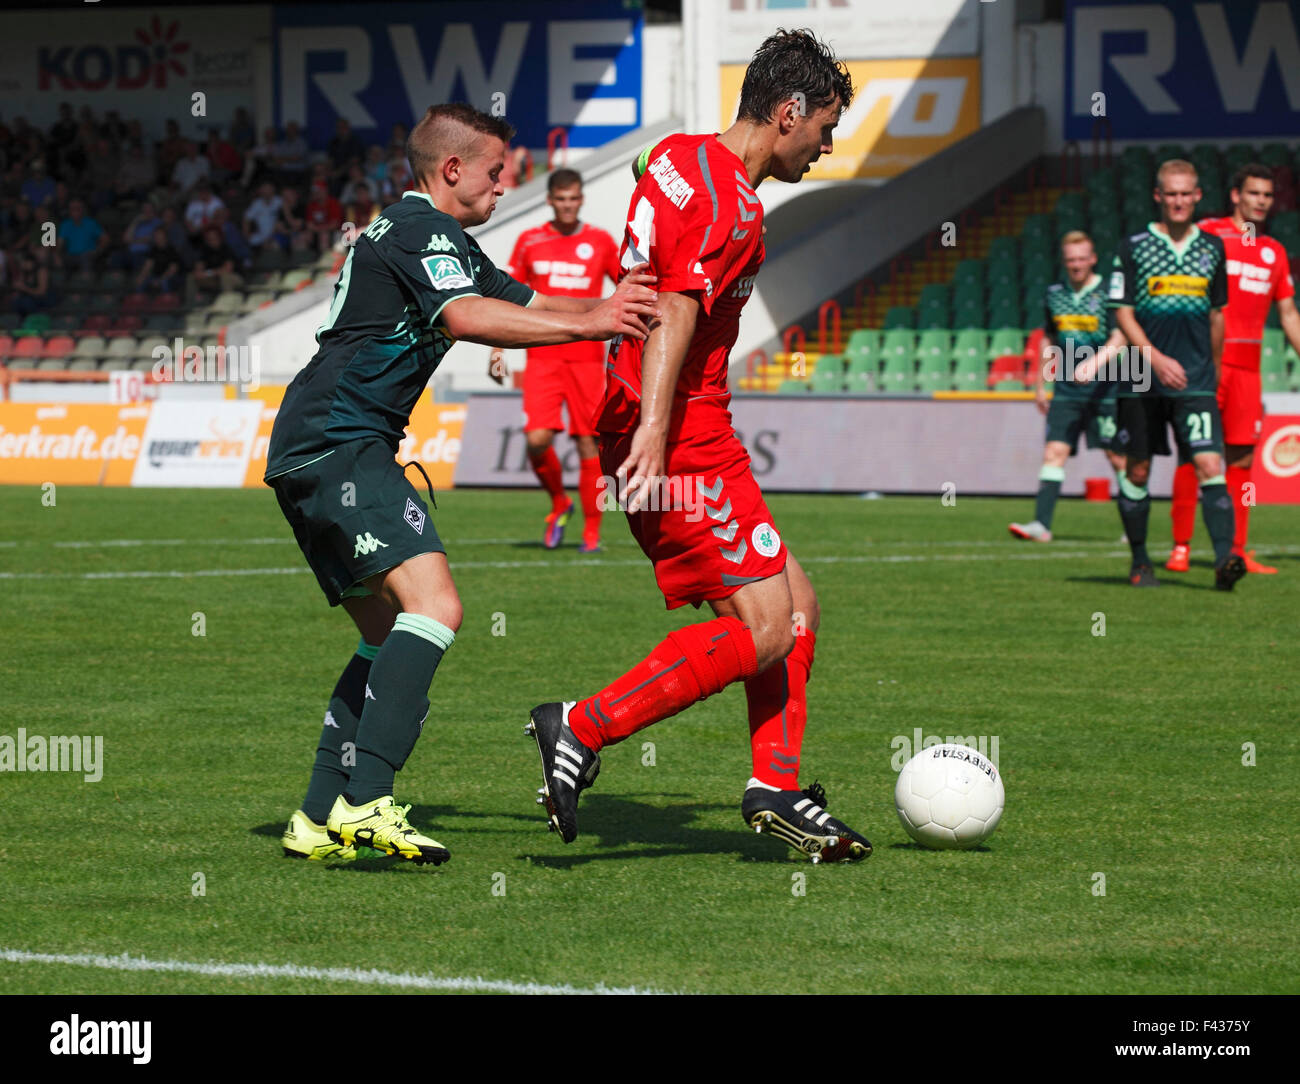 sports, football, Regional League West, 2015/2016, Rot Weiss Oberhausen versus Borussia Moenchengladbach U23 2:0, - Stock Image